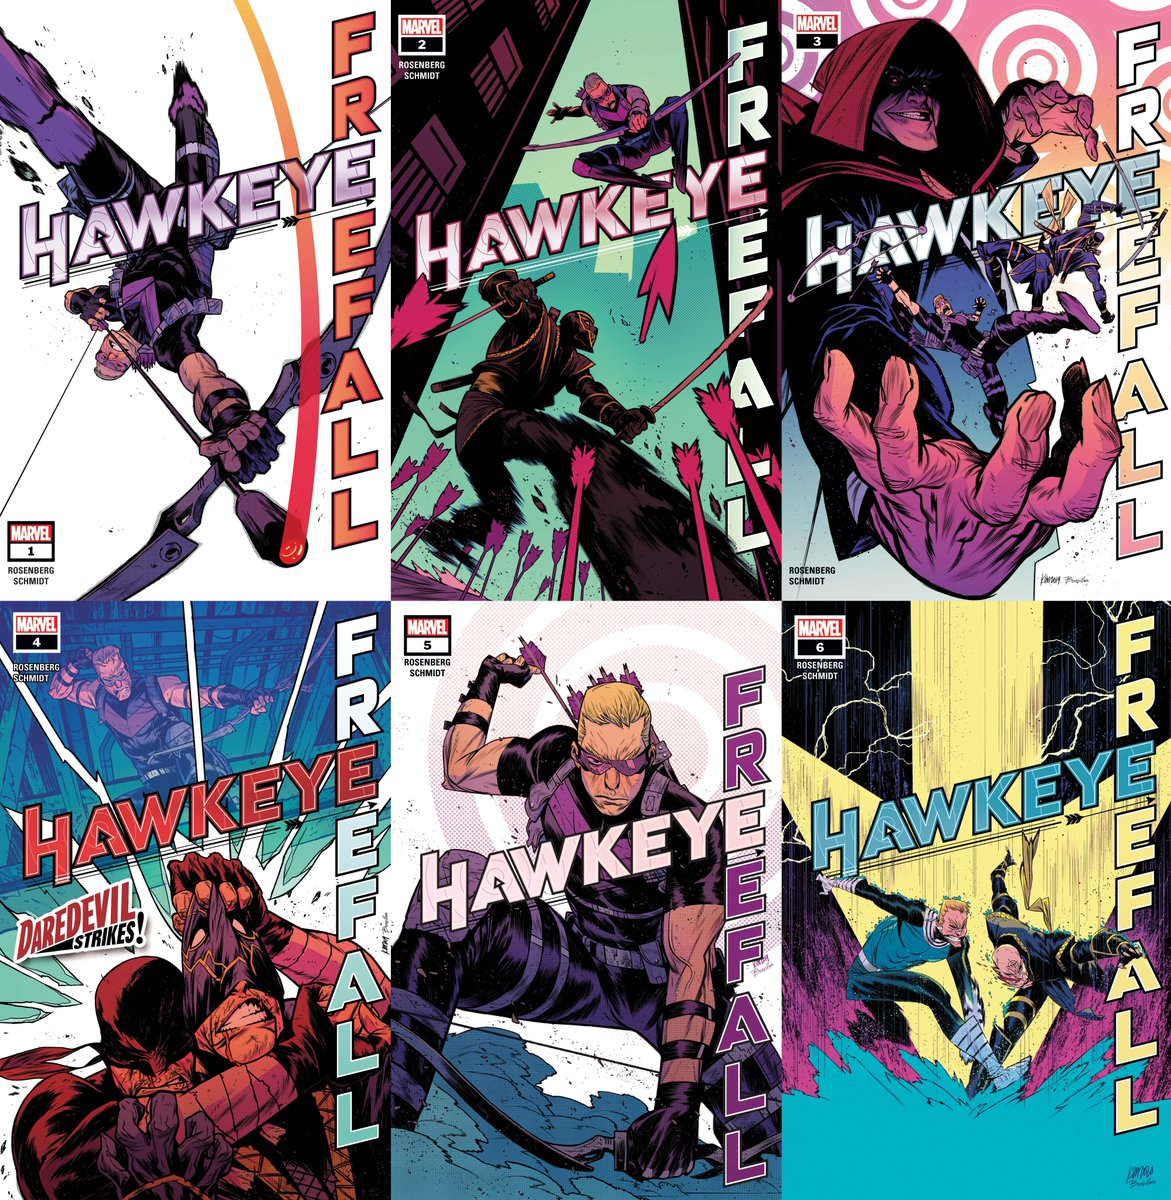 Now that the final issue of Hawkeye: Freefall is out, what are your thoughts on the series?